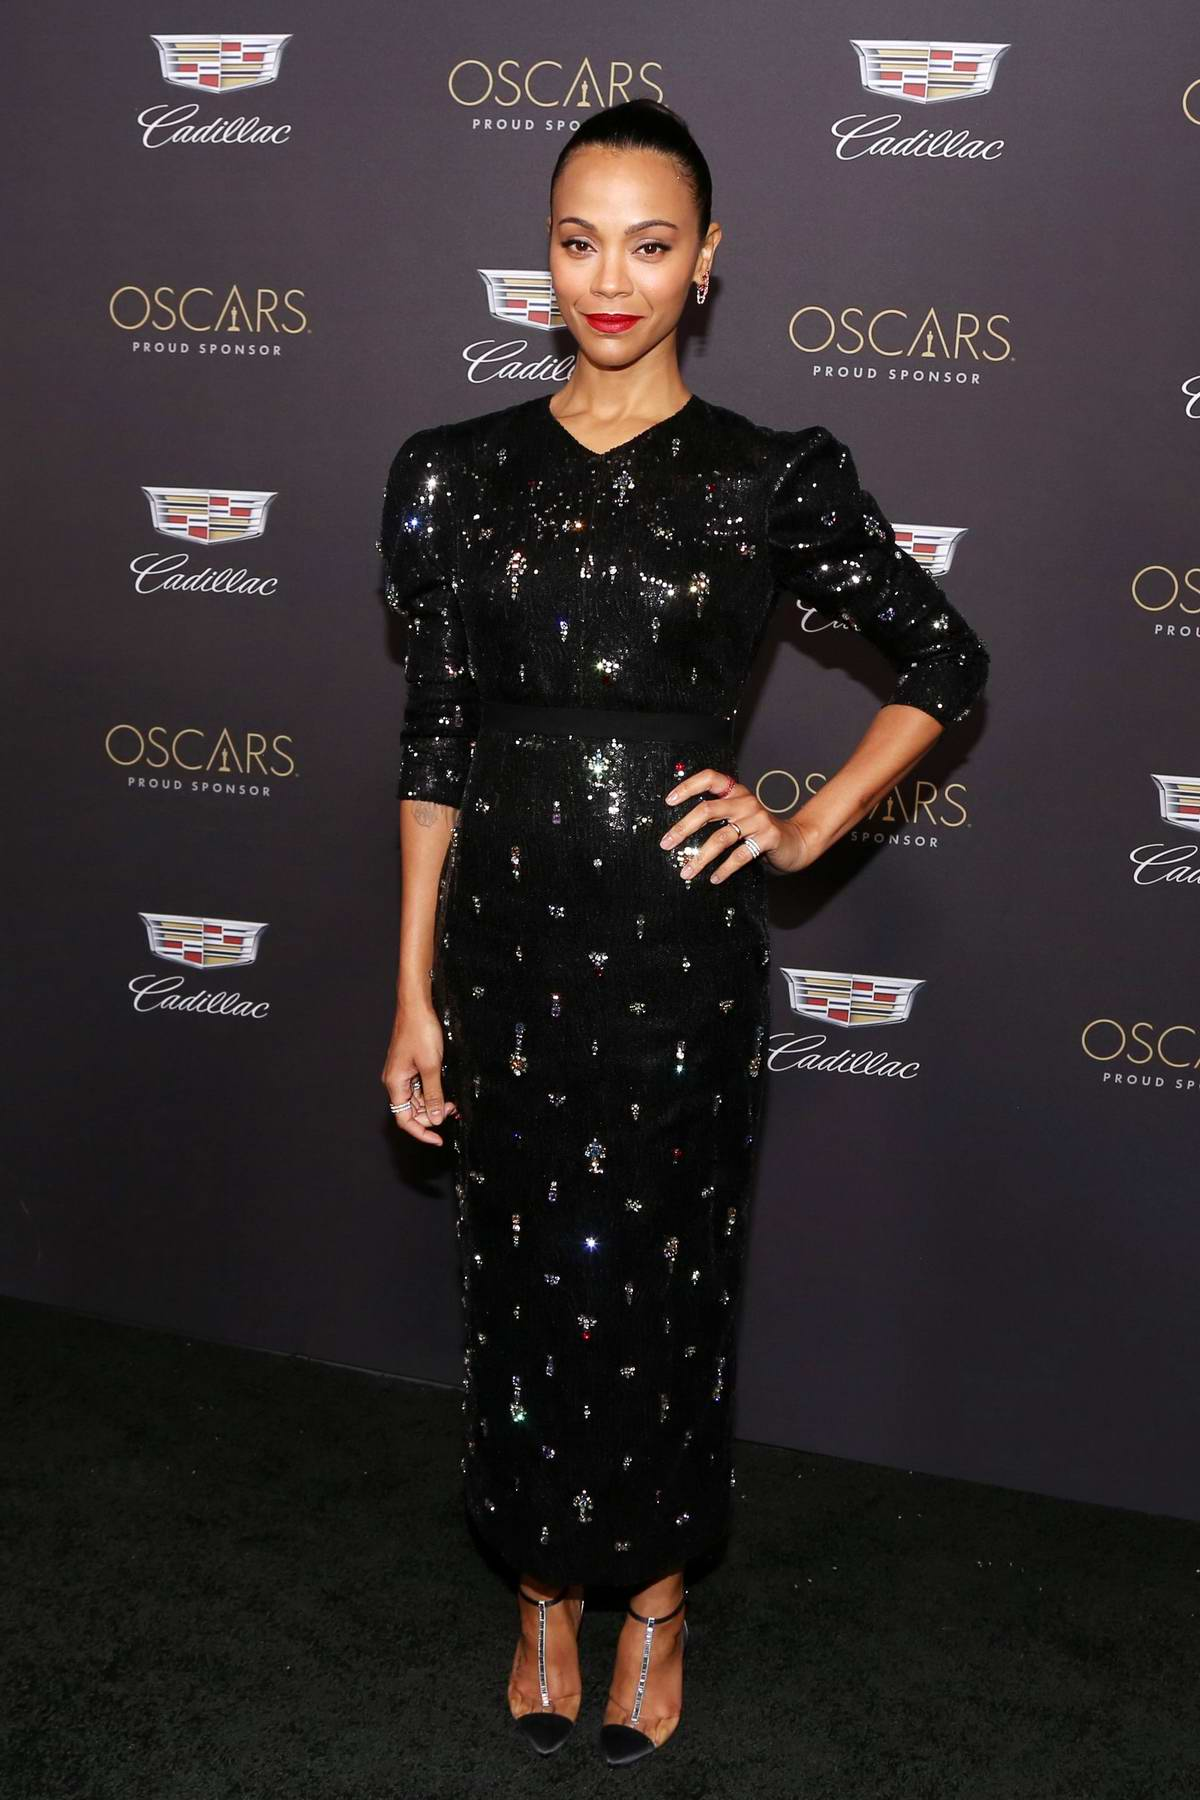 Zoe Saldana attends Cadillac Celebrates The 91st Annual Academy Awards held at the Chateau Marmont in West Hollywood, Los Angeles